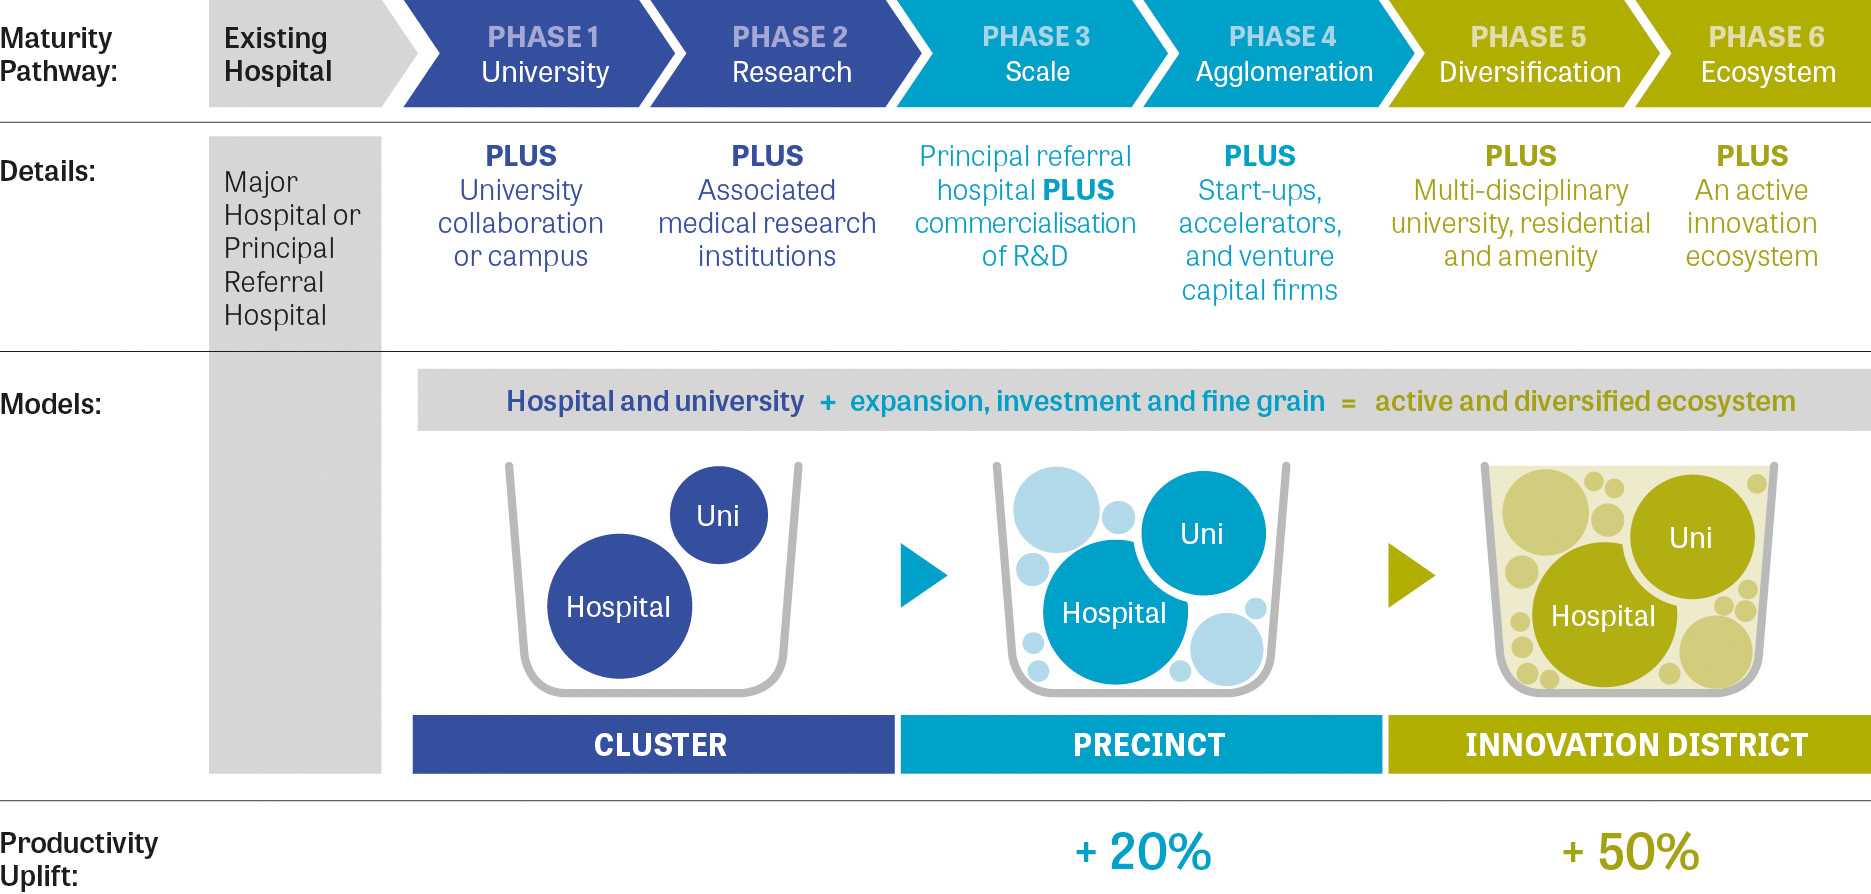 Diagram showing maturity pathway, models and uplift for health and education precincts.